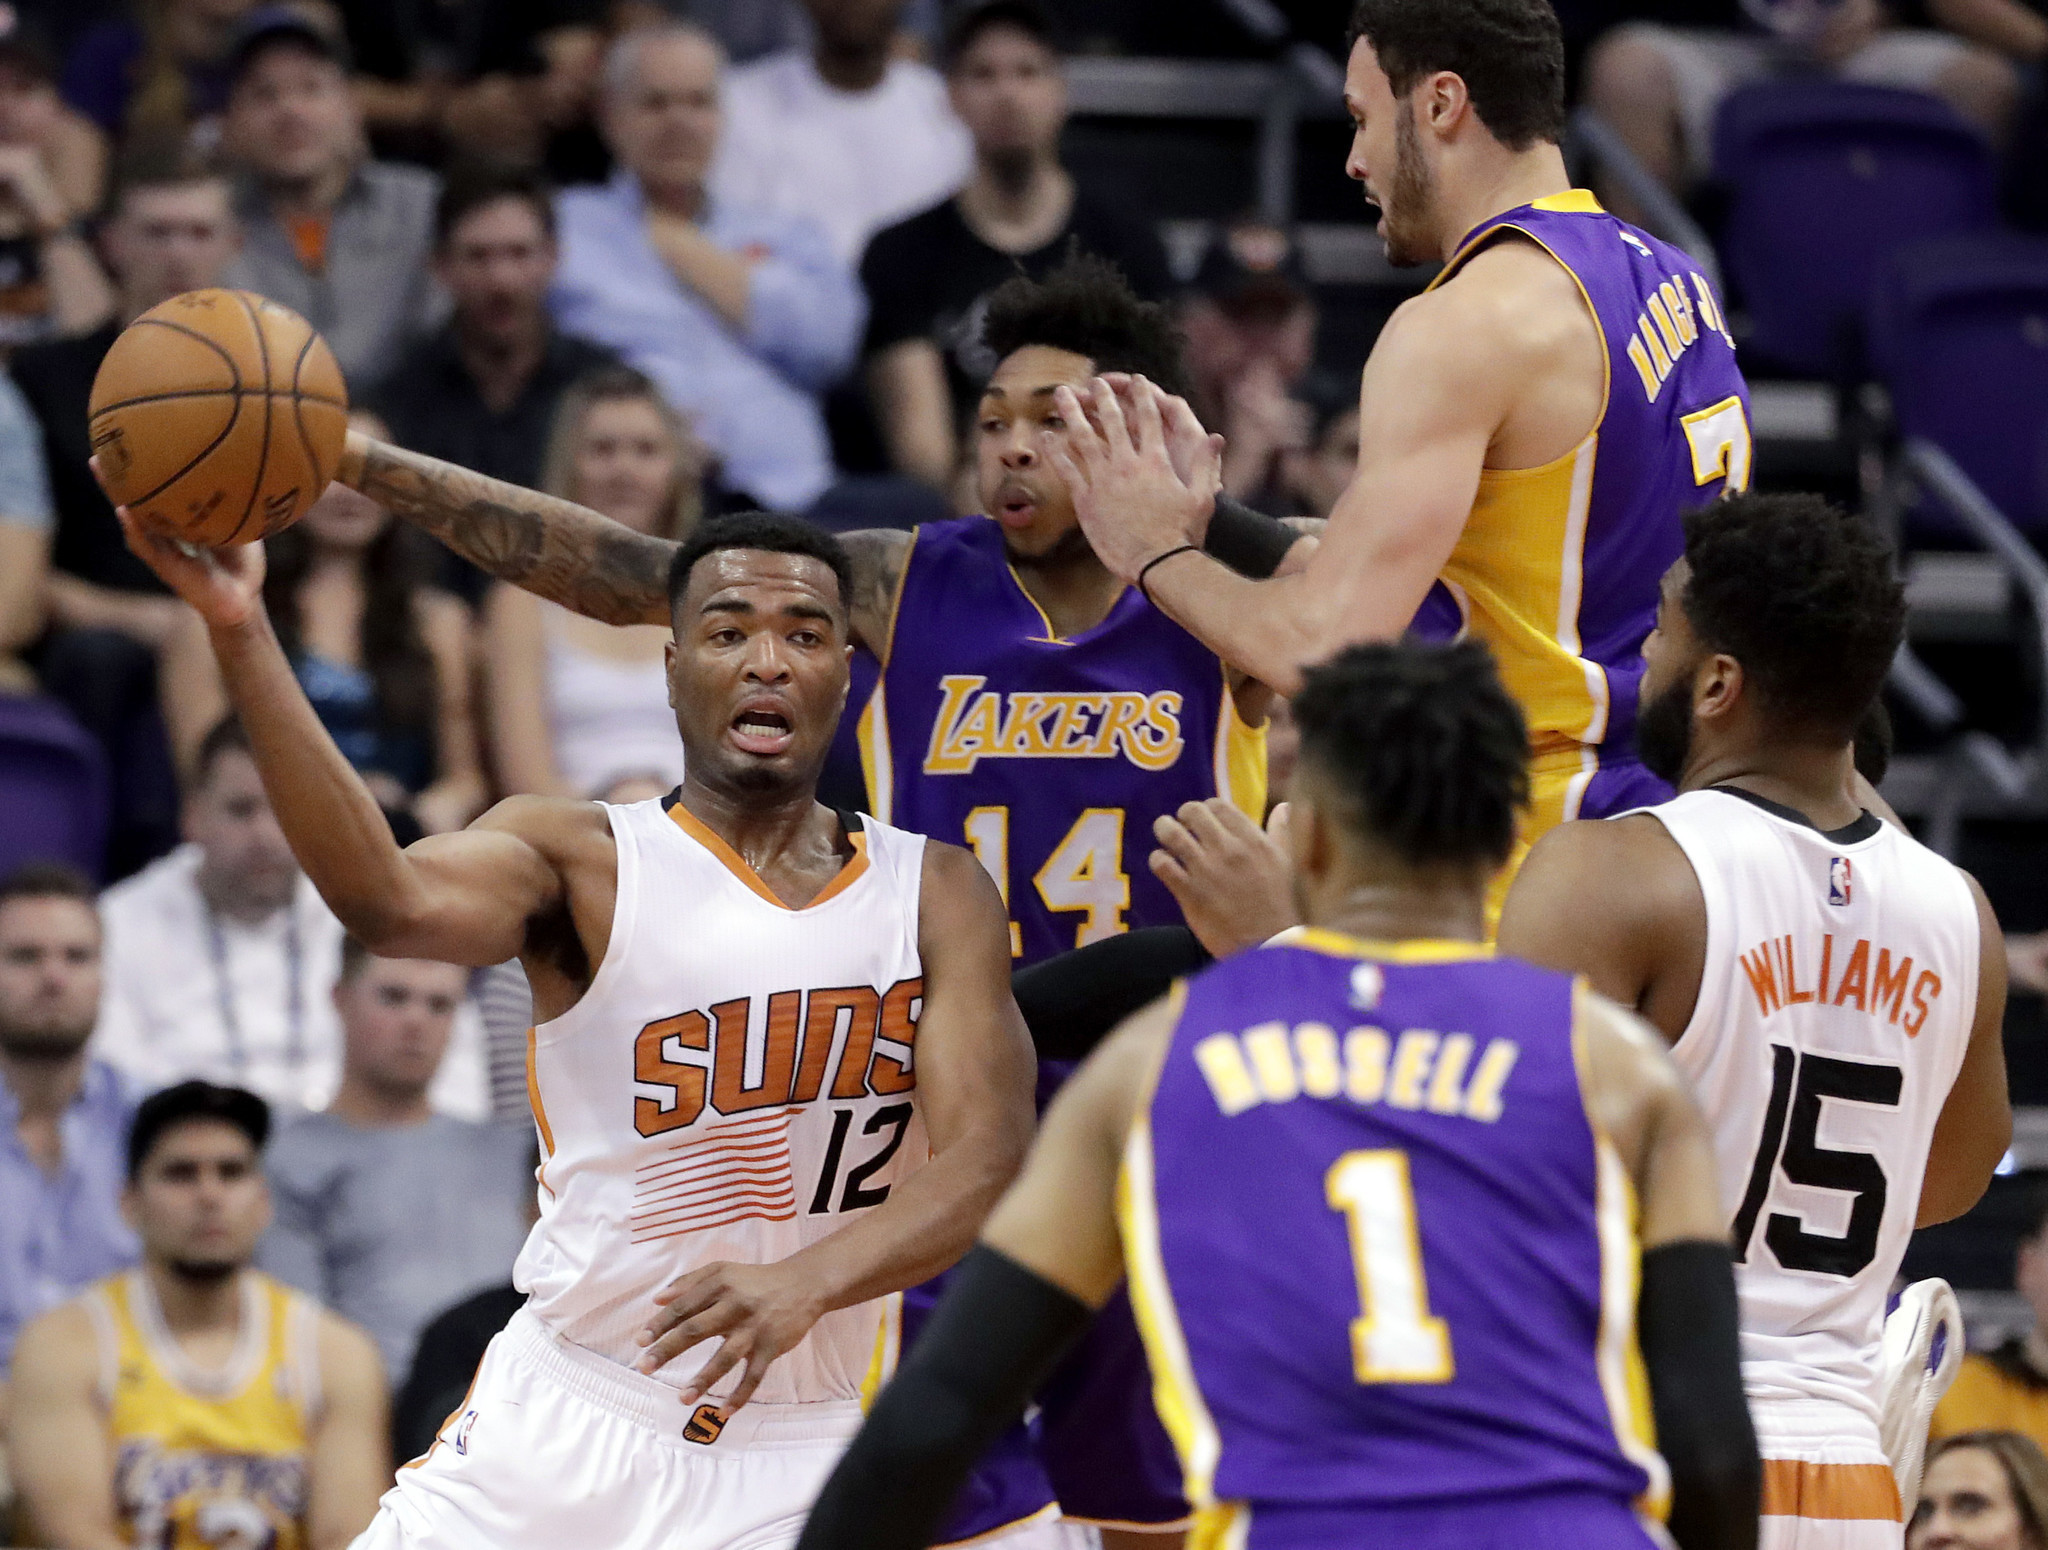 12d0c4a3974 rssfeeds.usatoday.com Lakers end eight-game losing streak with victory over  Suns